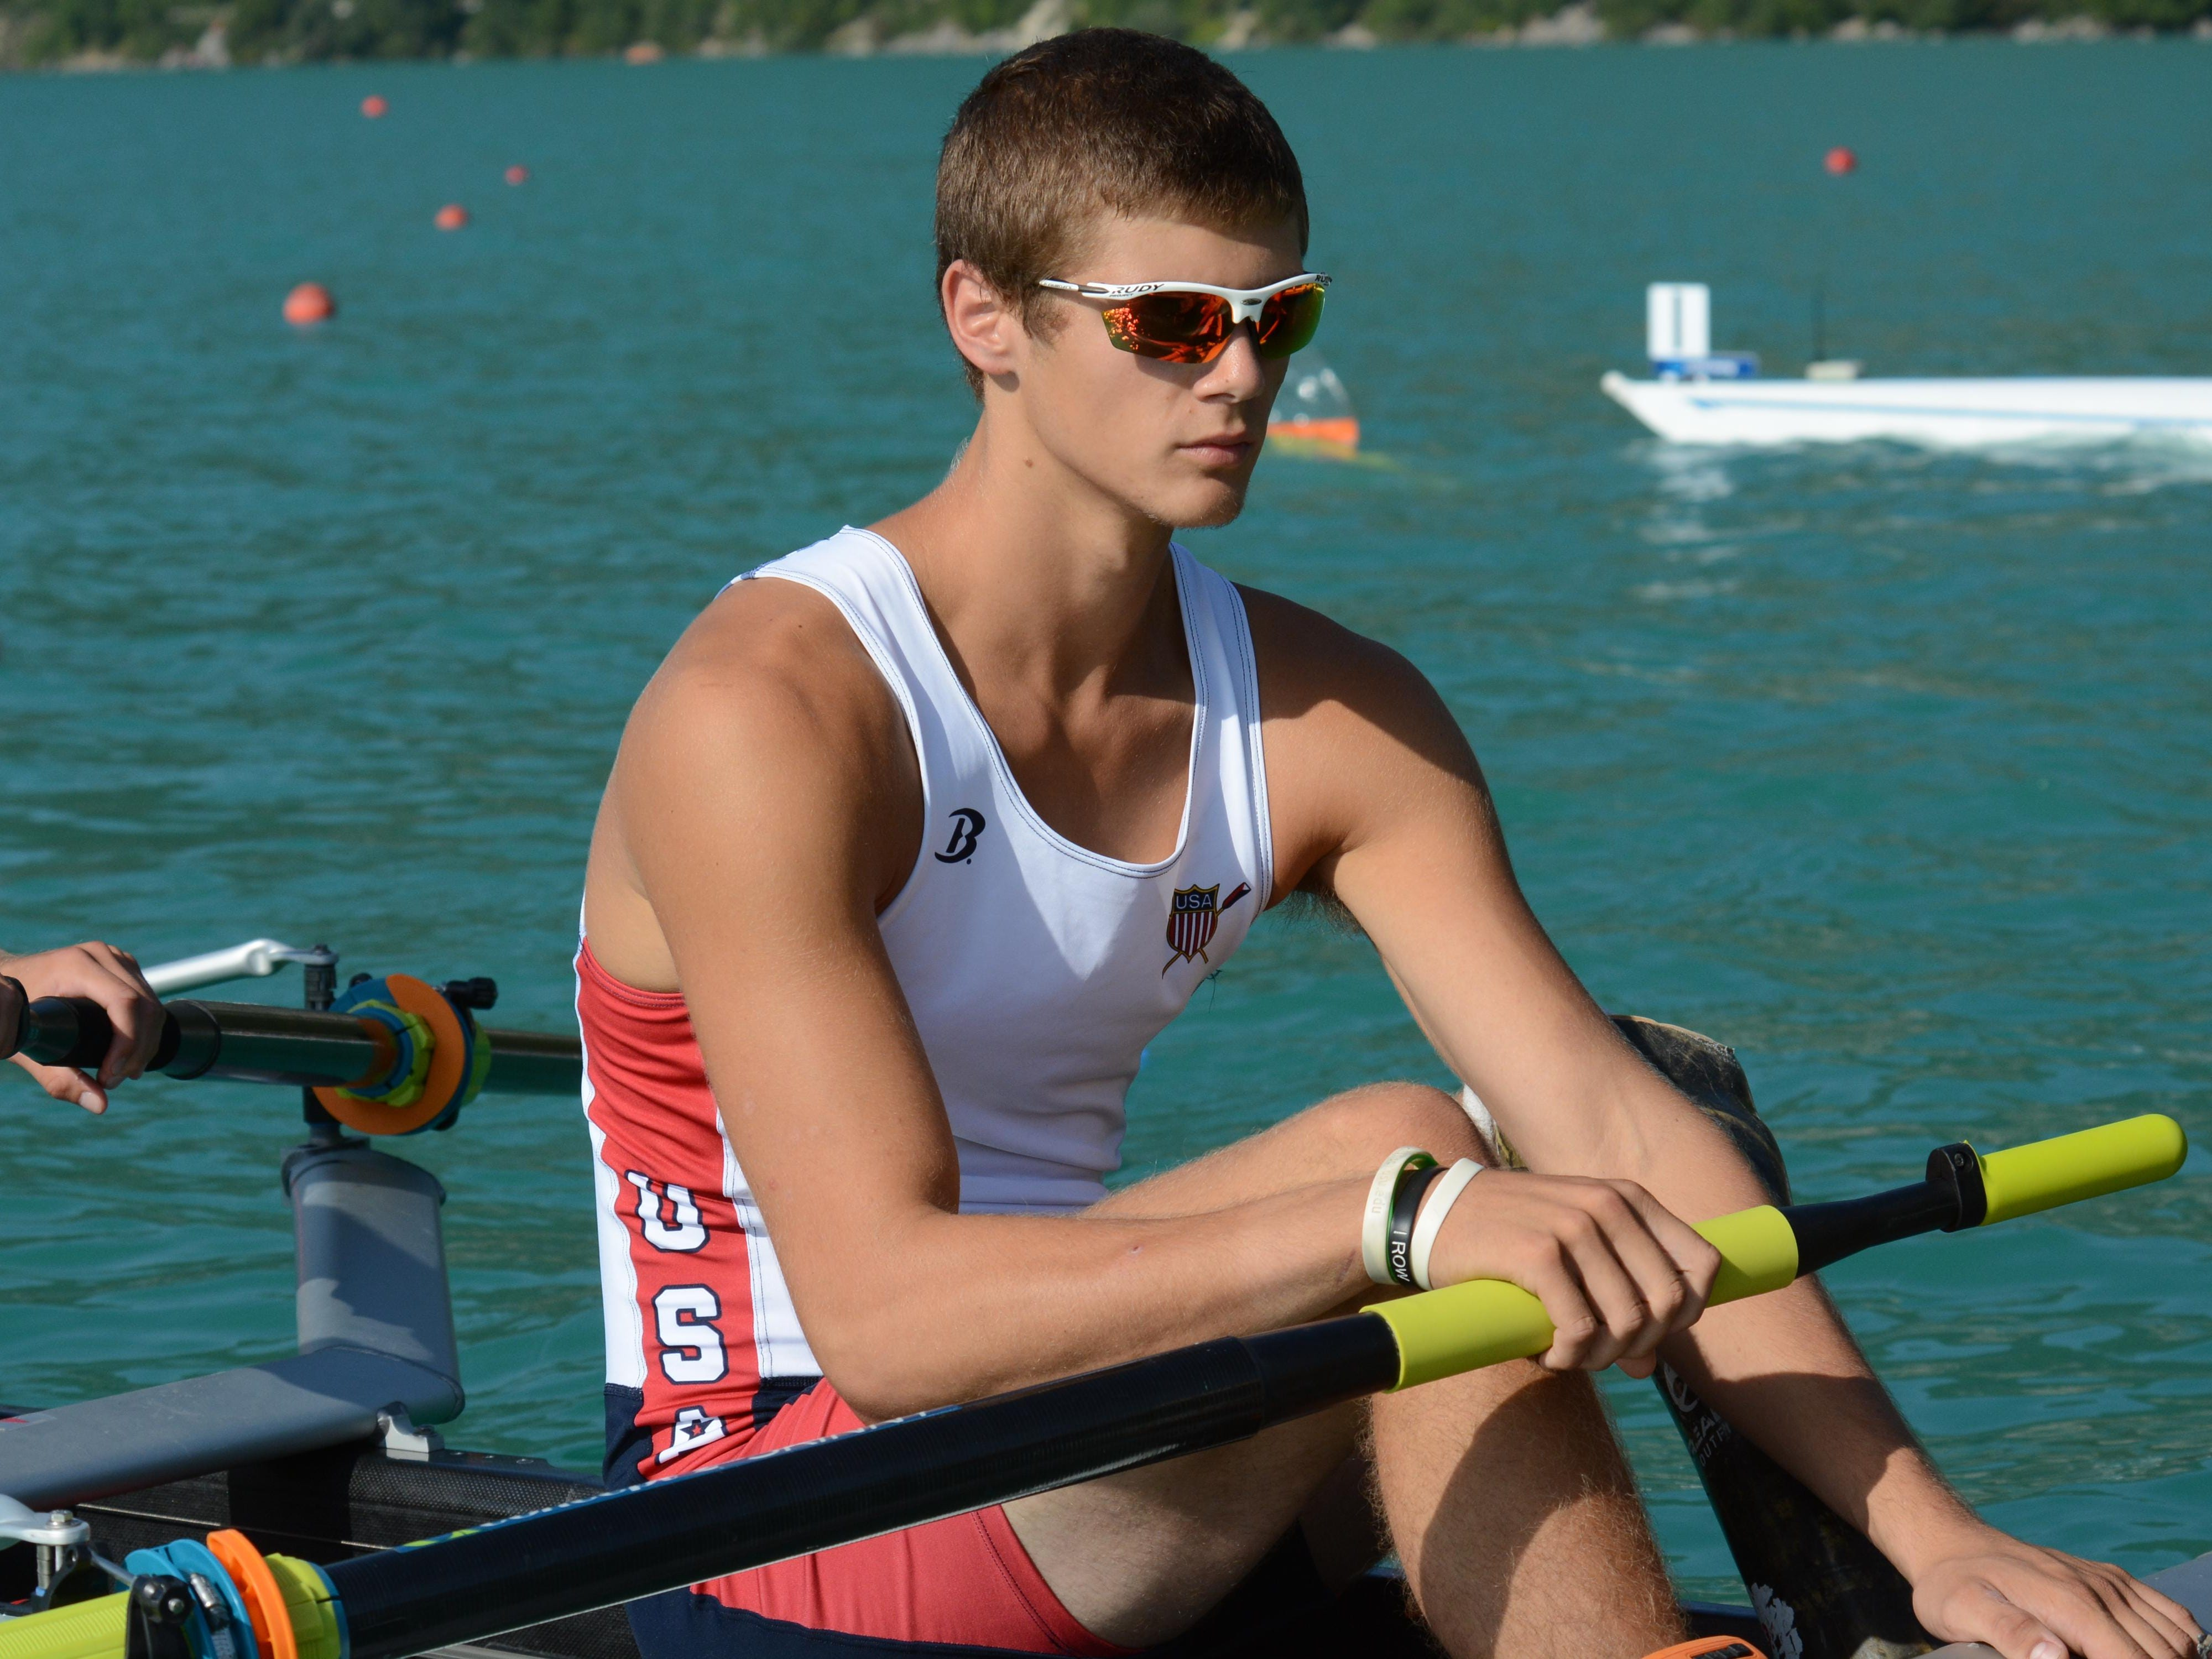 Bethel native Ricky Vandegrift recently competes in a heat in the ParaRowing World Championship.